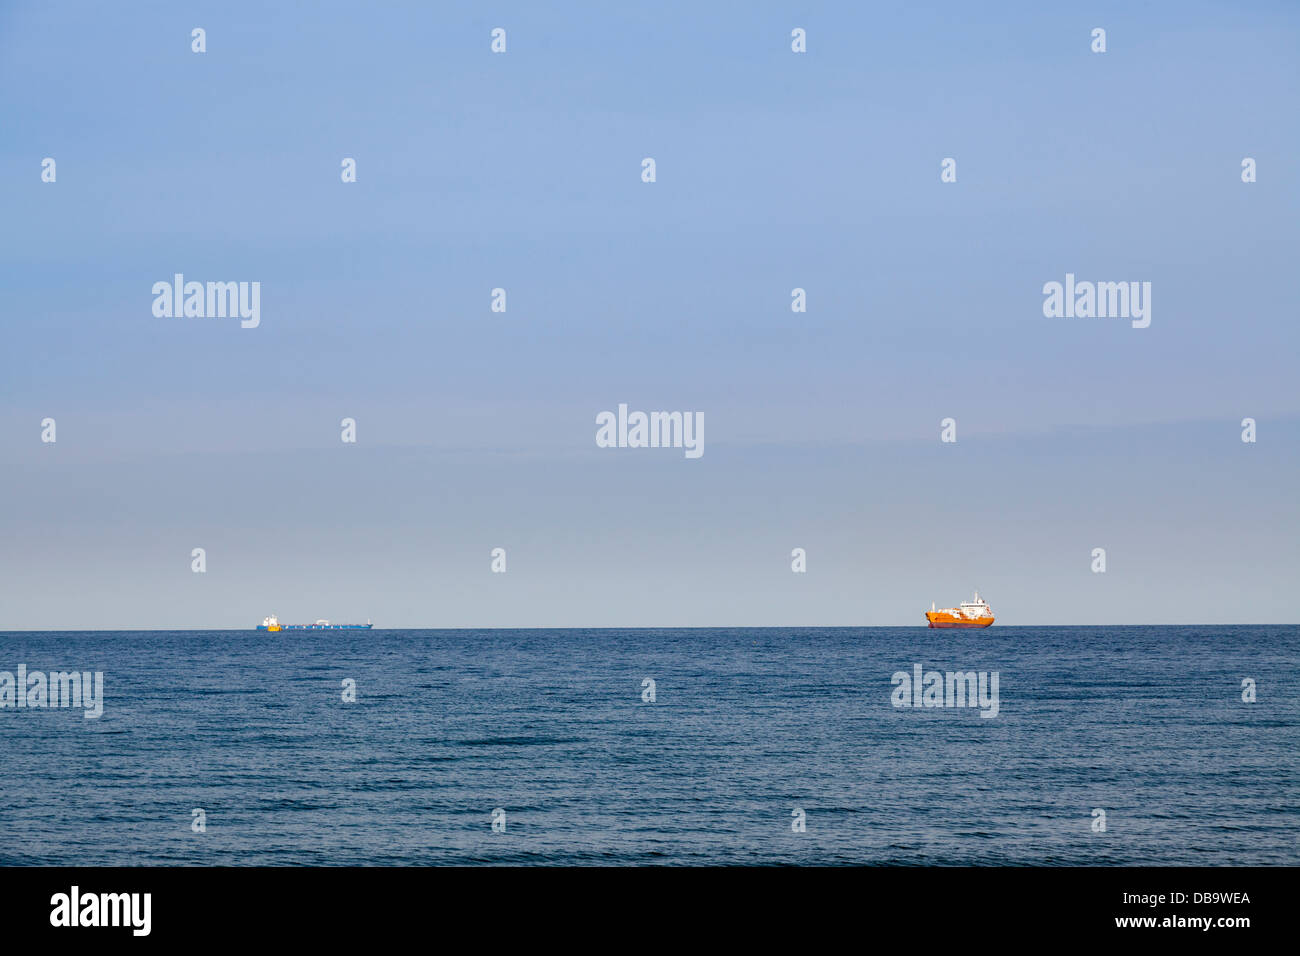 Container ships on horizon at sea. - Stock Image